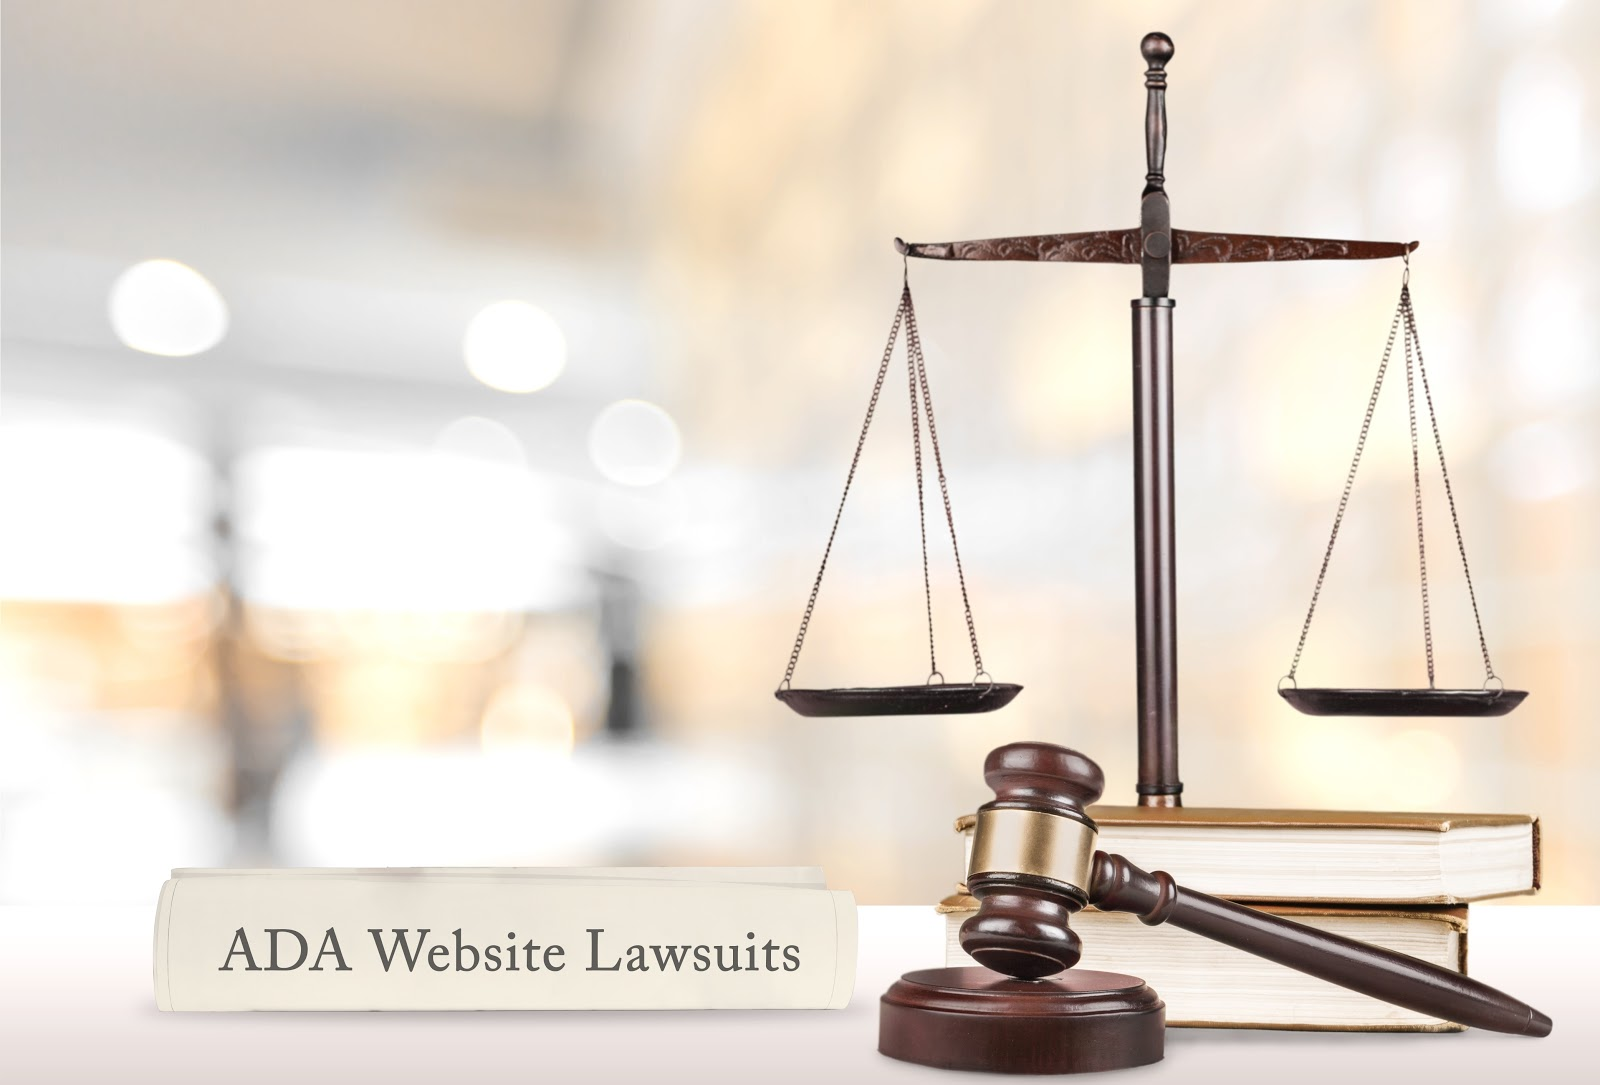 The ADA Lawsuits